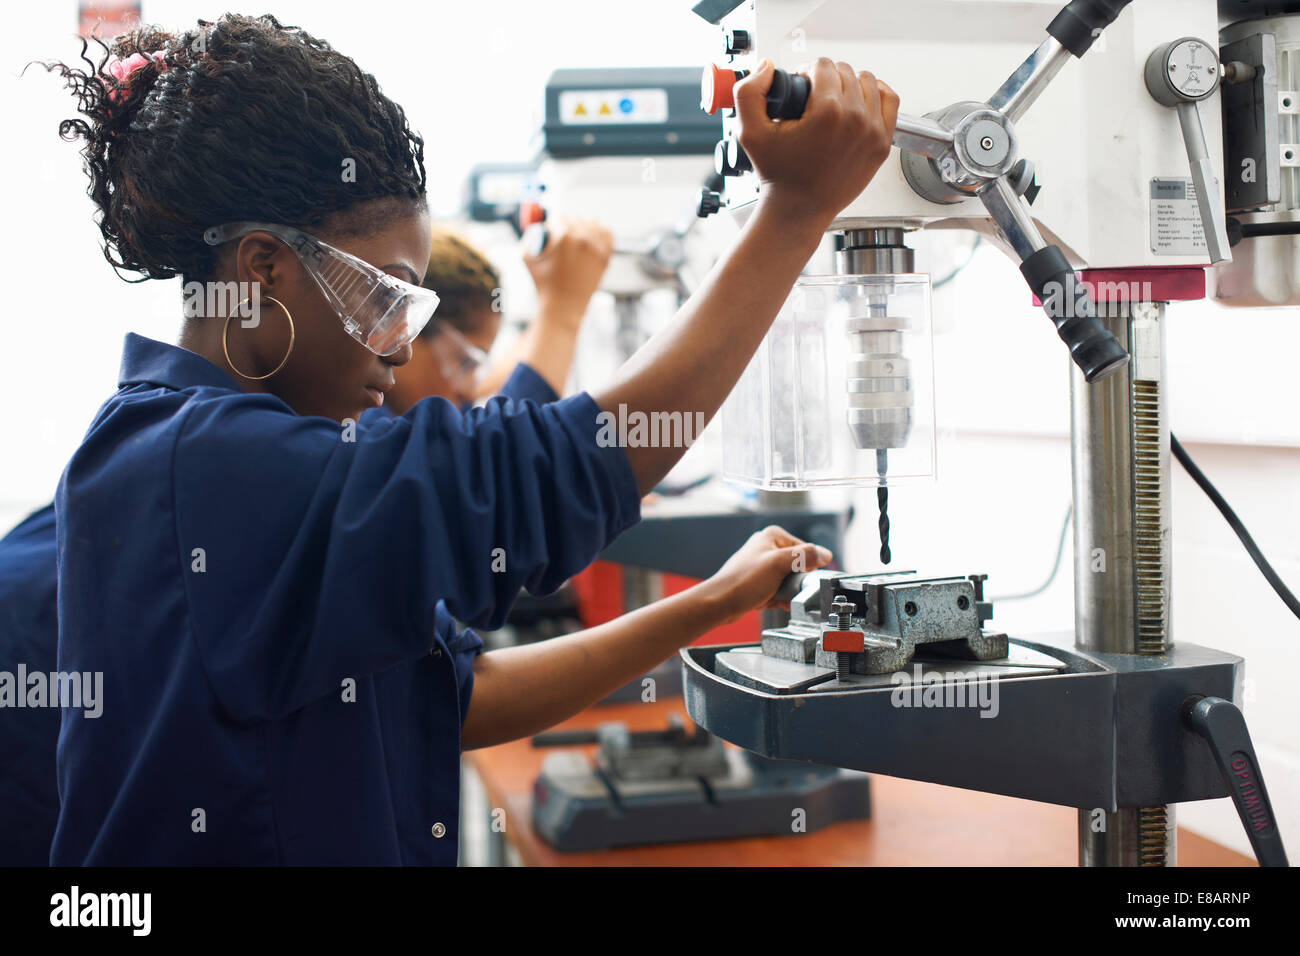 Students using drilling machines in college workshop Stock Photo